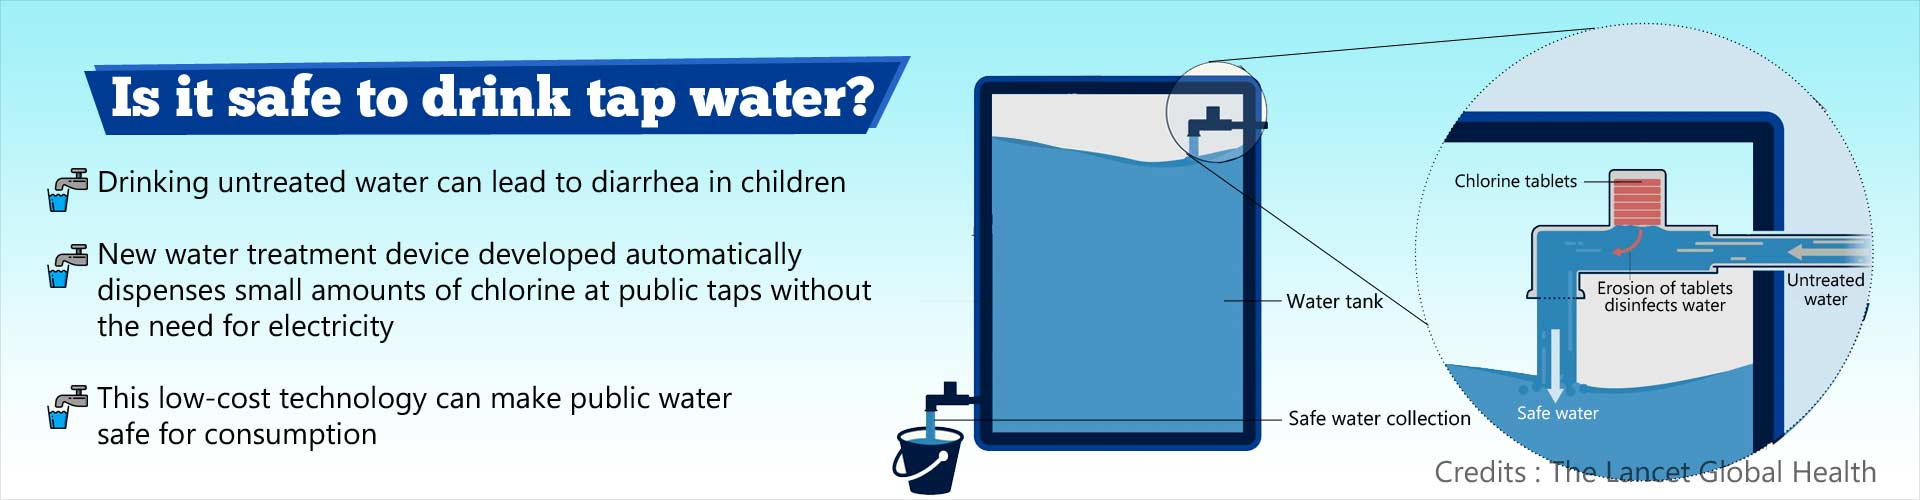 Automatically Chlorinating Water at Public Taps can Reduce Diarrhea in Children